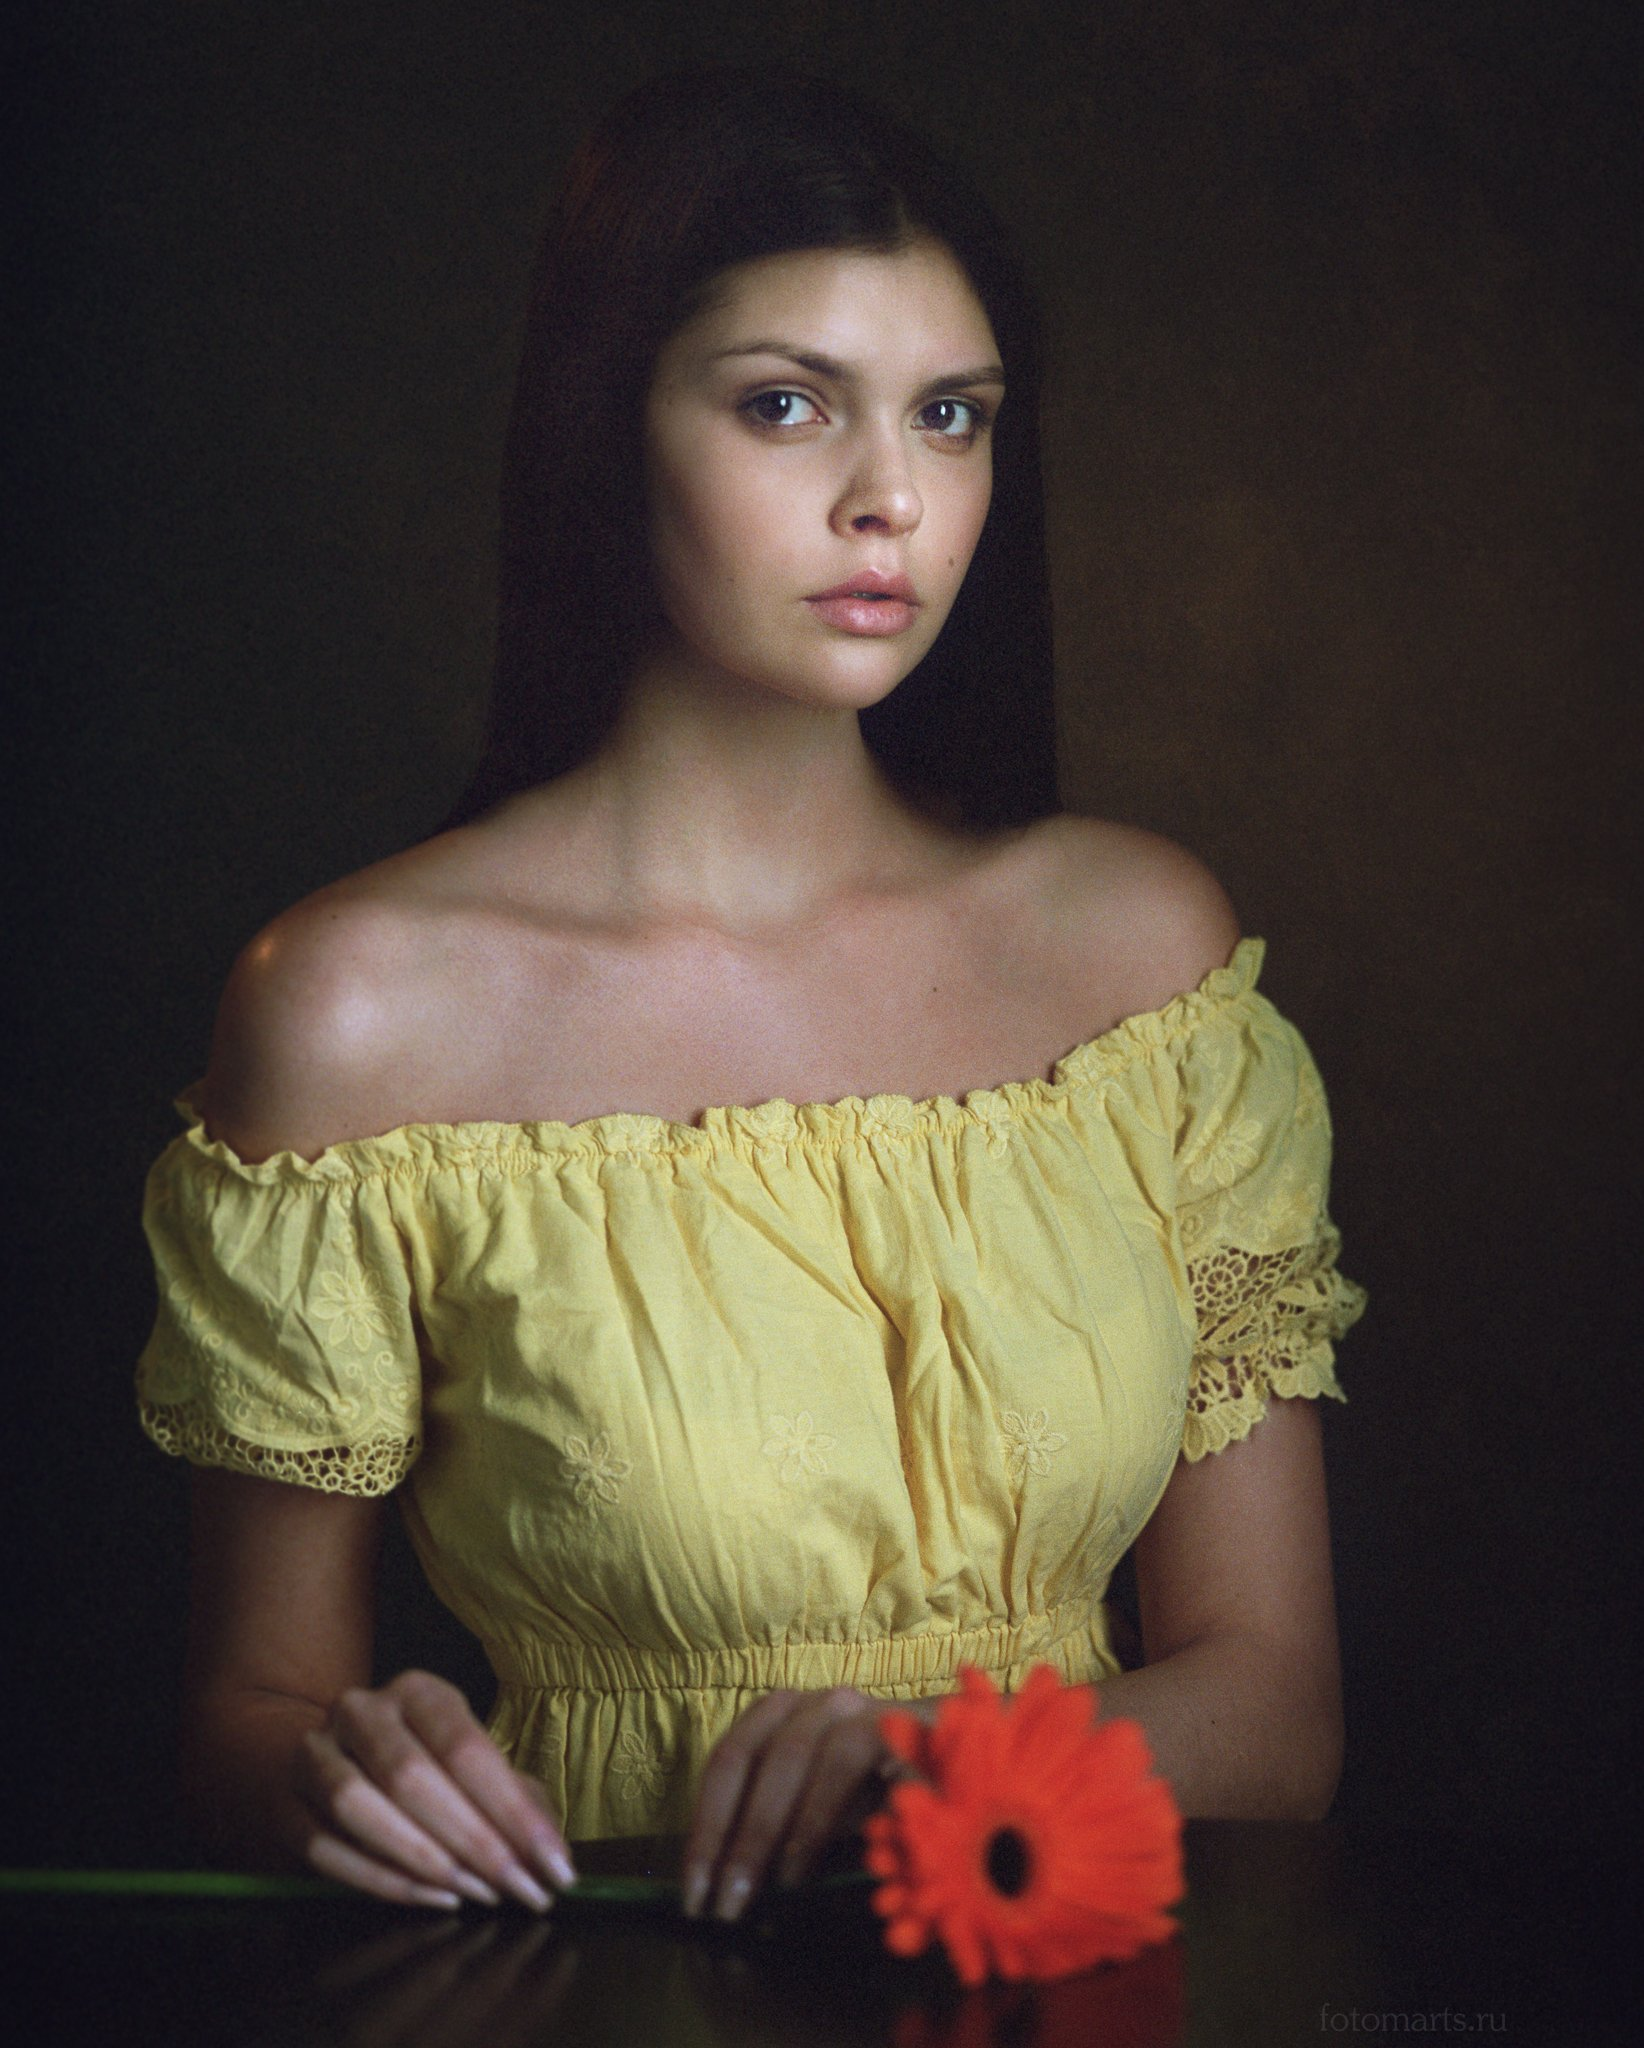 портрет portrait model studio light portra400 film, Сергей Мартынов